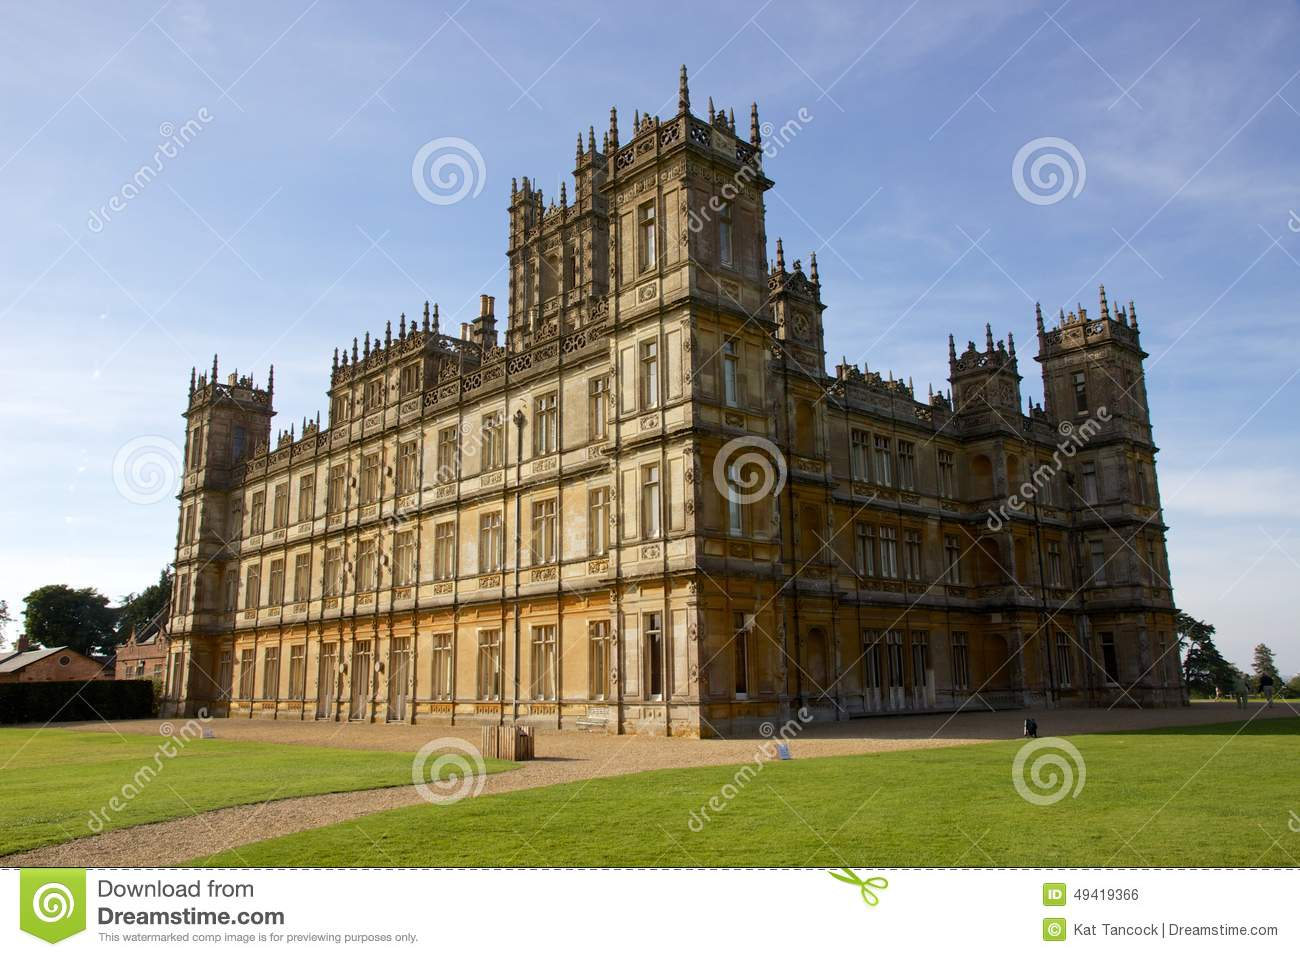 Highclere castle england shooting location for downton abbey editorial phot - Chateau de downton abbey ...